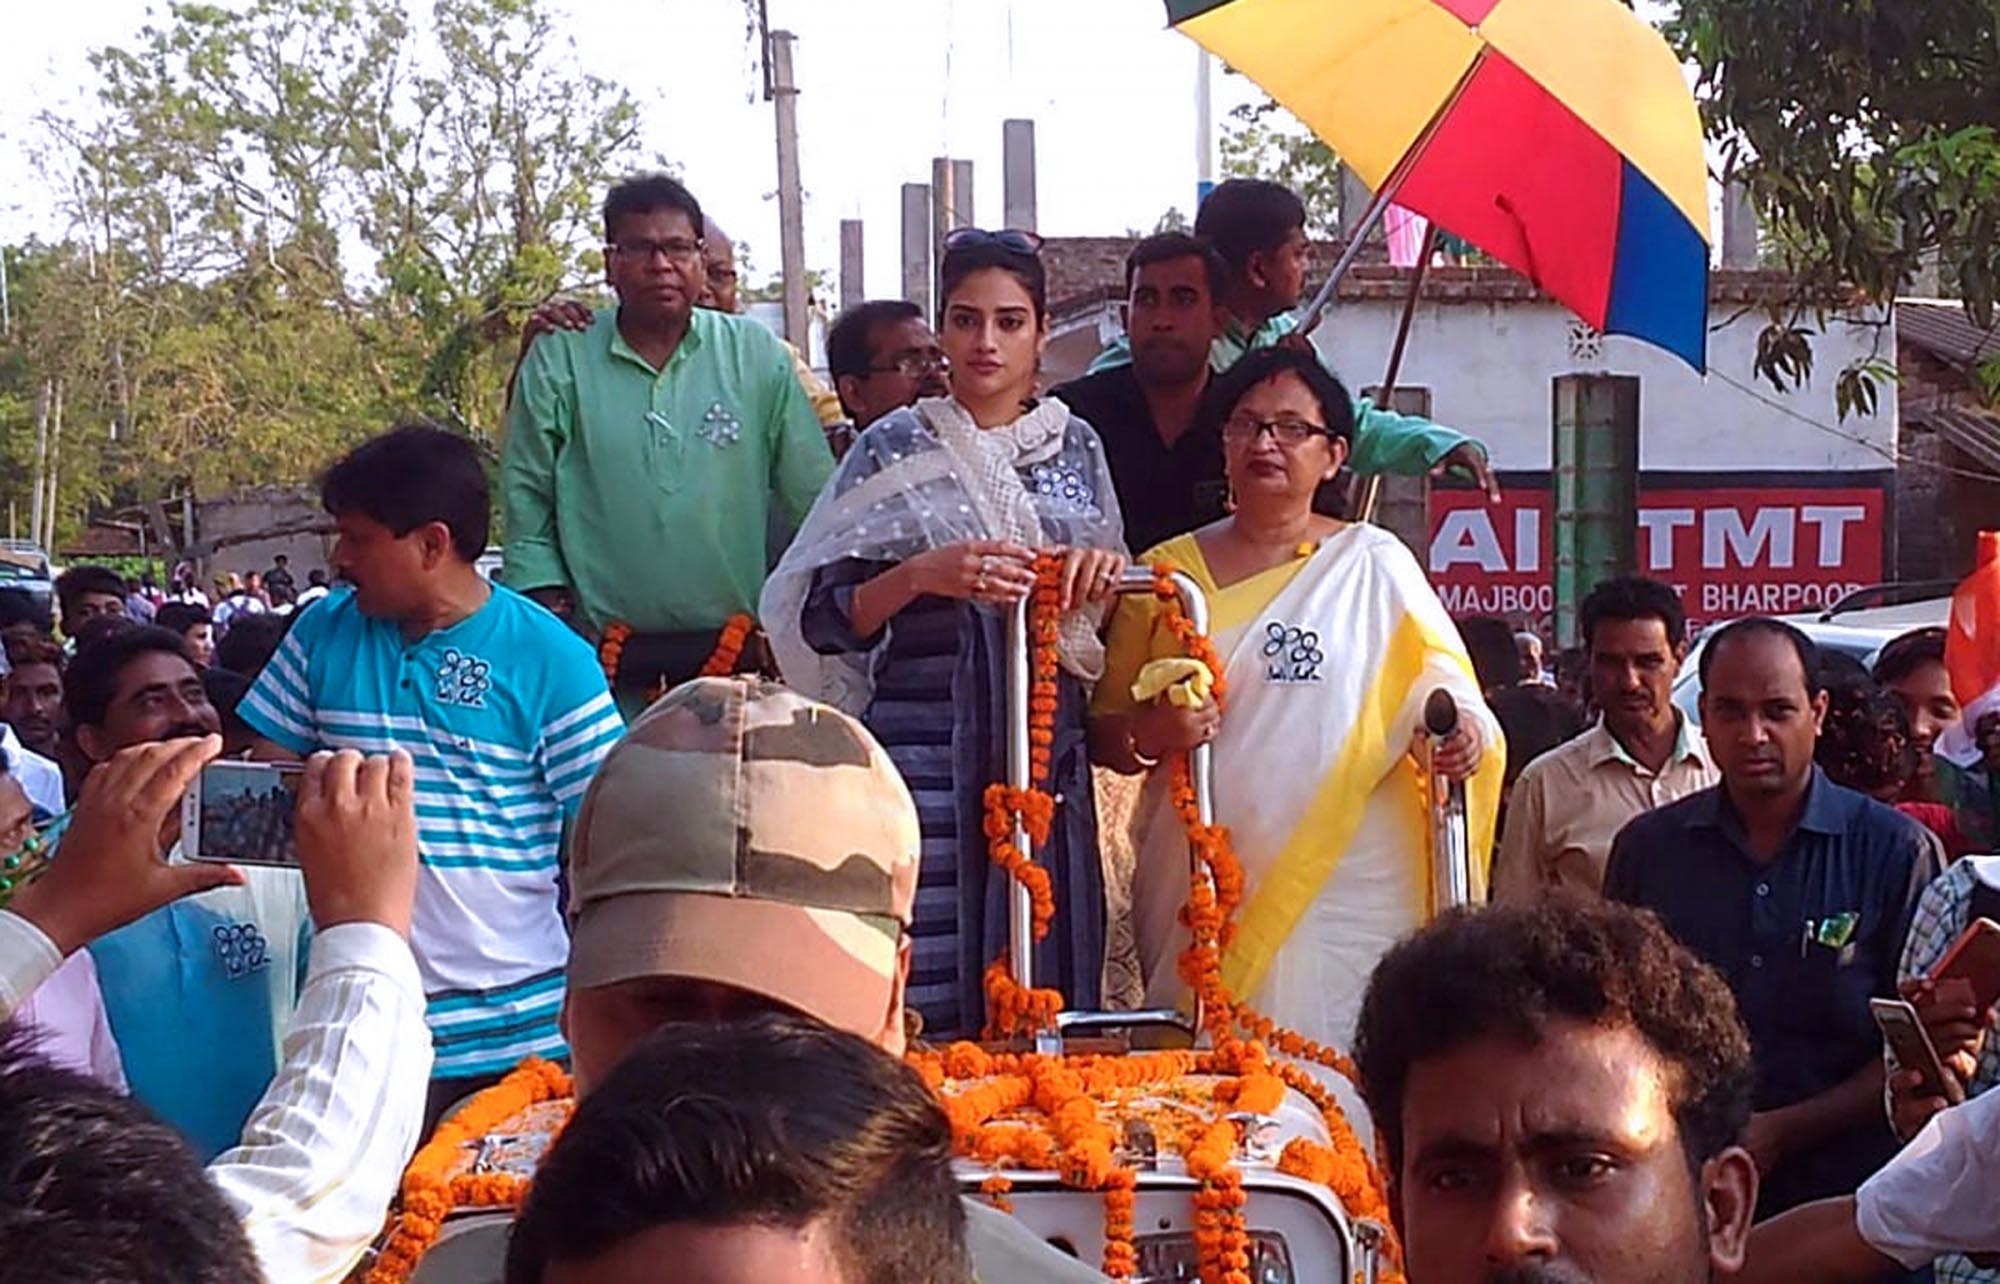 Medinipur: TMC's candidate from Basirhat constituency, Nusrat Jahan during an election campaign for the forthcoming Lok Sabha polls at Sabra village in Paschim Medinipur district, West Bengal, on April 25, 2019. (Photo: IANS)